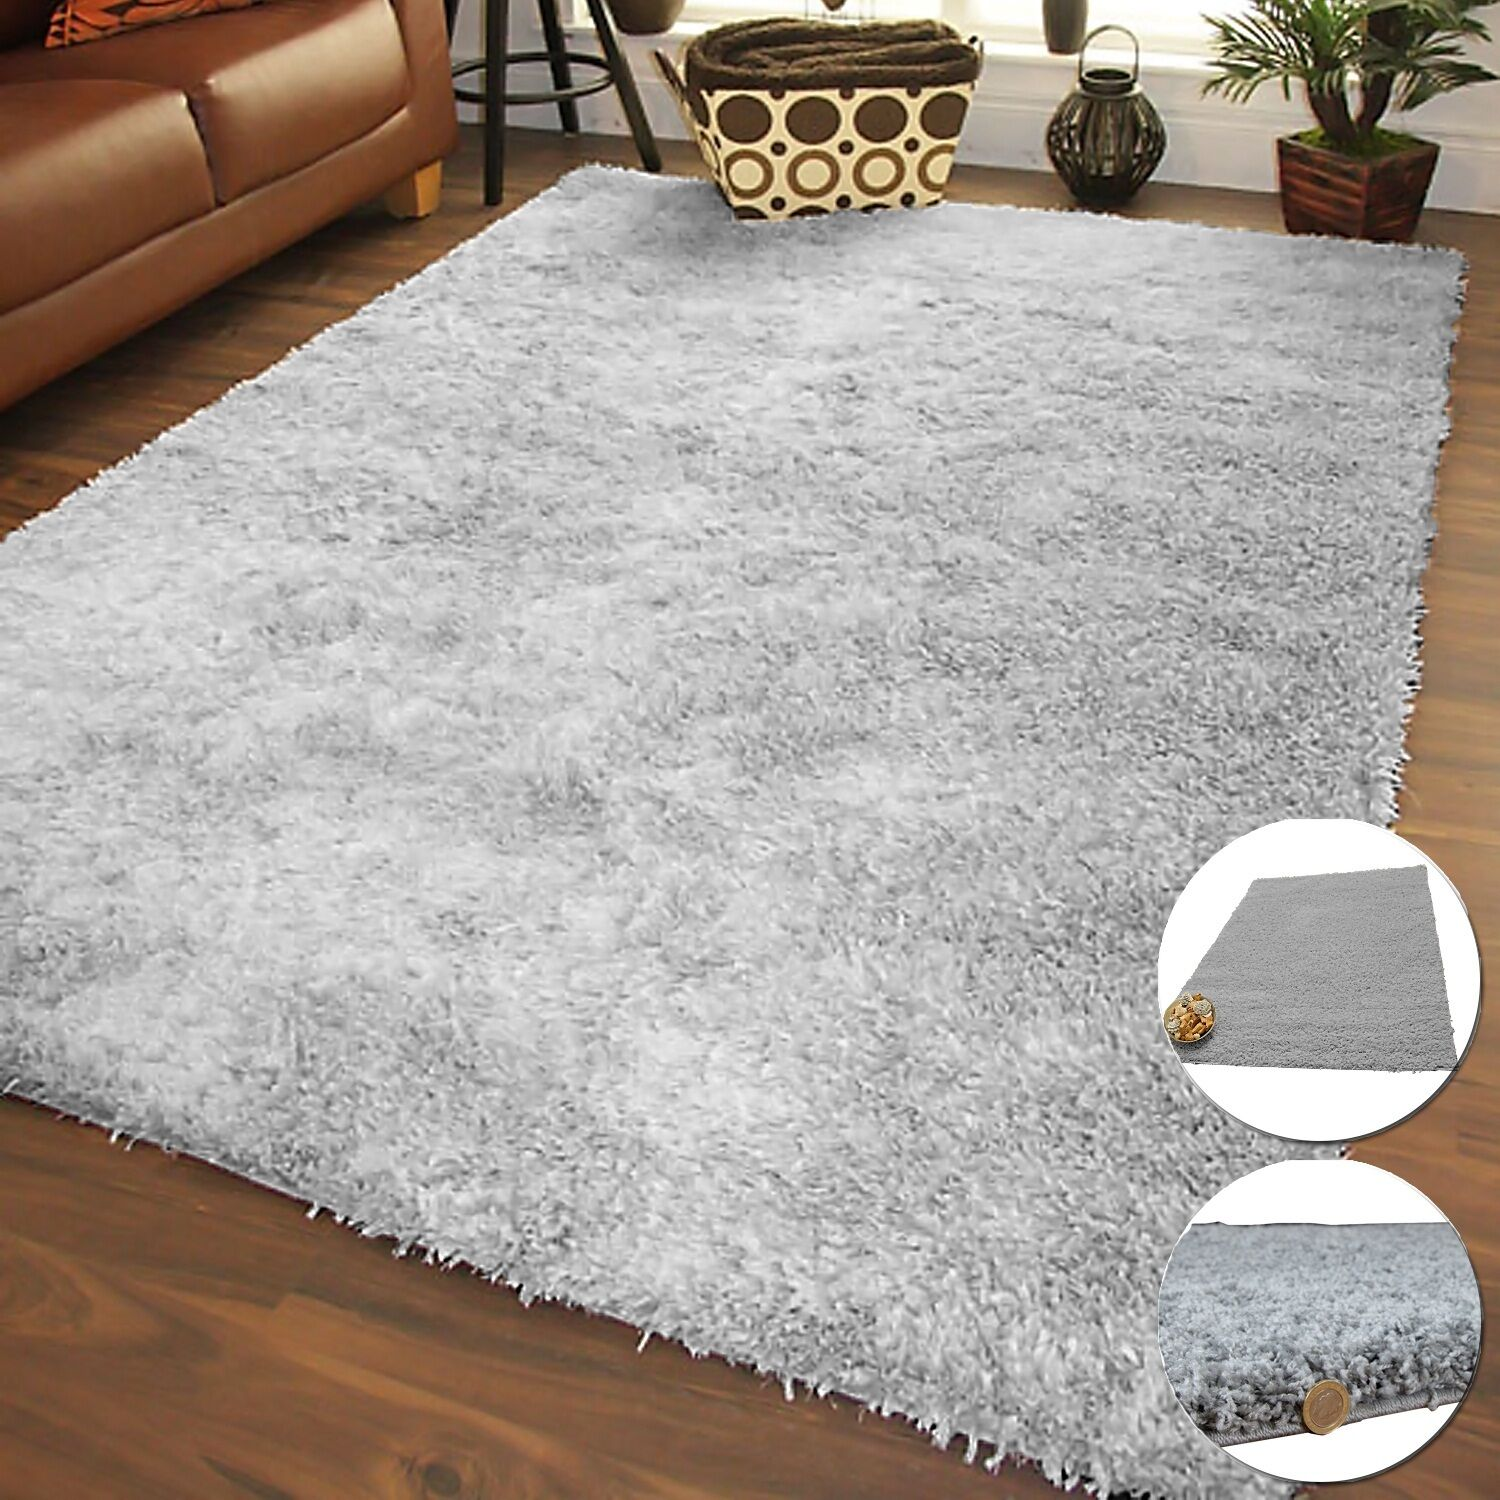 FLUFFY GREY THICK NON SHED SHAGGY AREA RUGS MODERN DINING